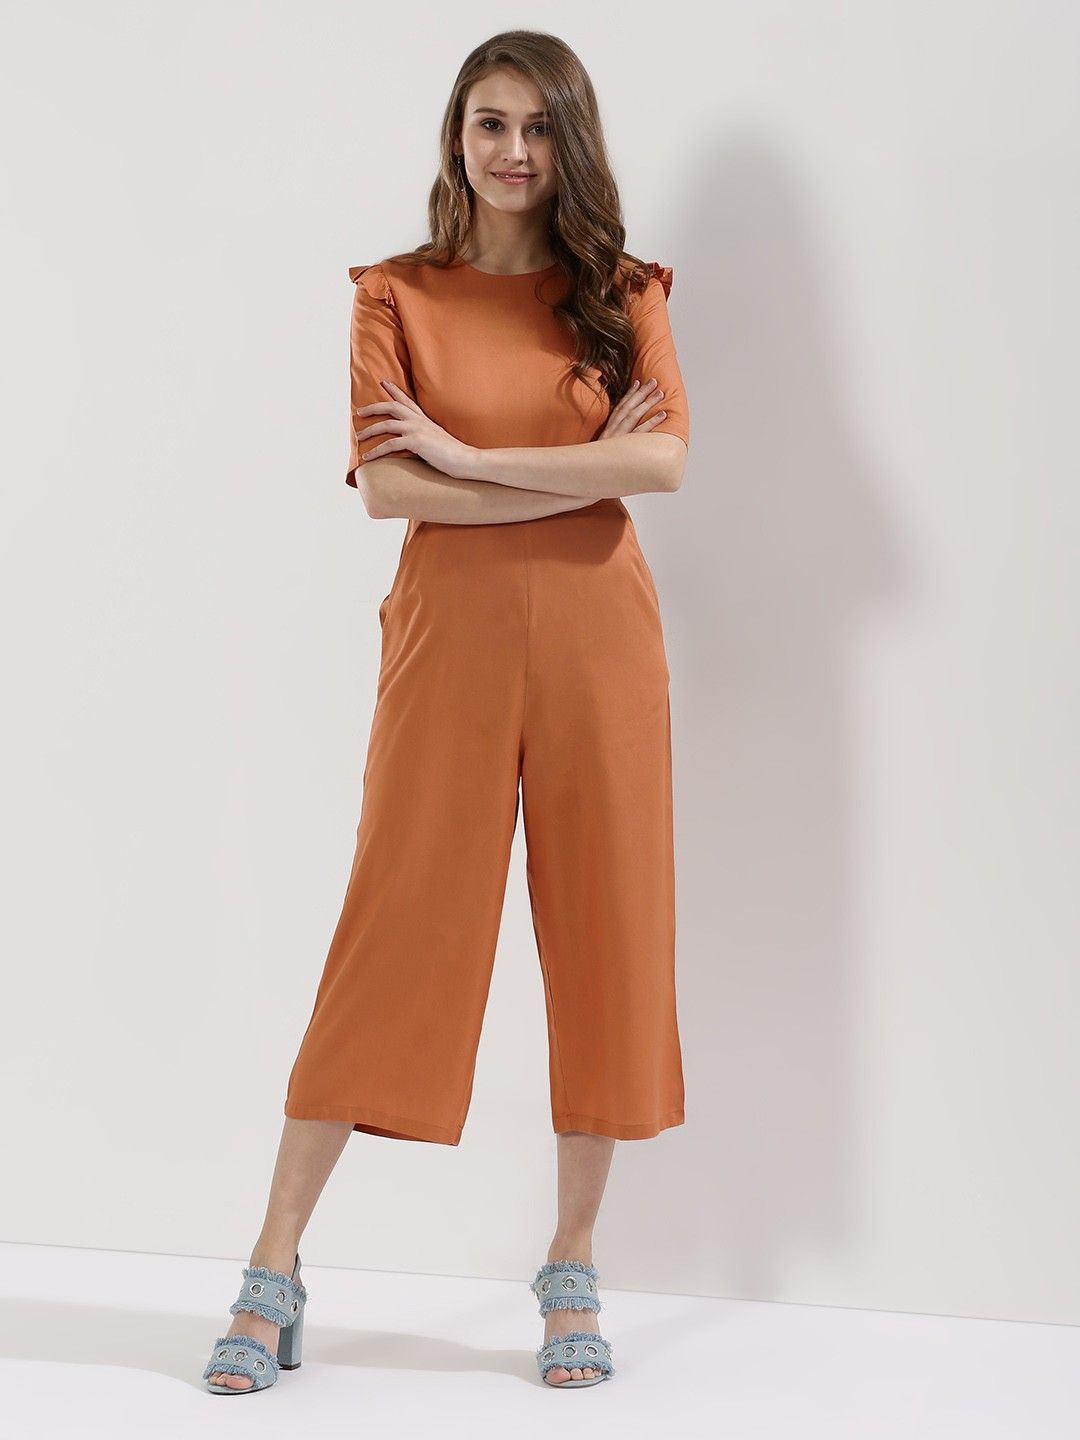 8be3b5d2e Buy Ruffle Shoulder Cropped Jumpsuit For Women - Women's Brown Jumpsuits  Online in India